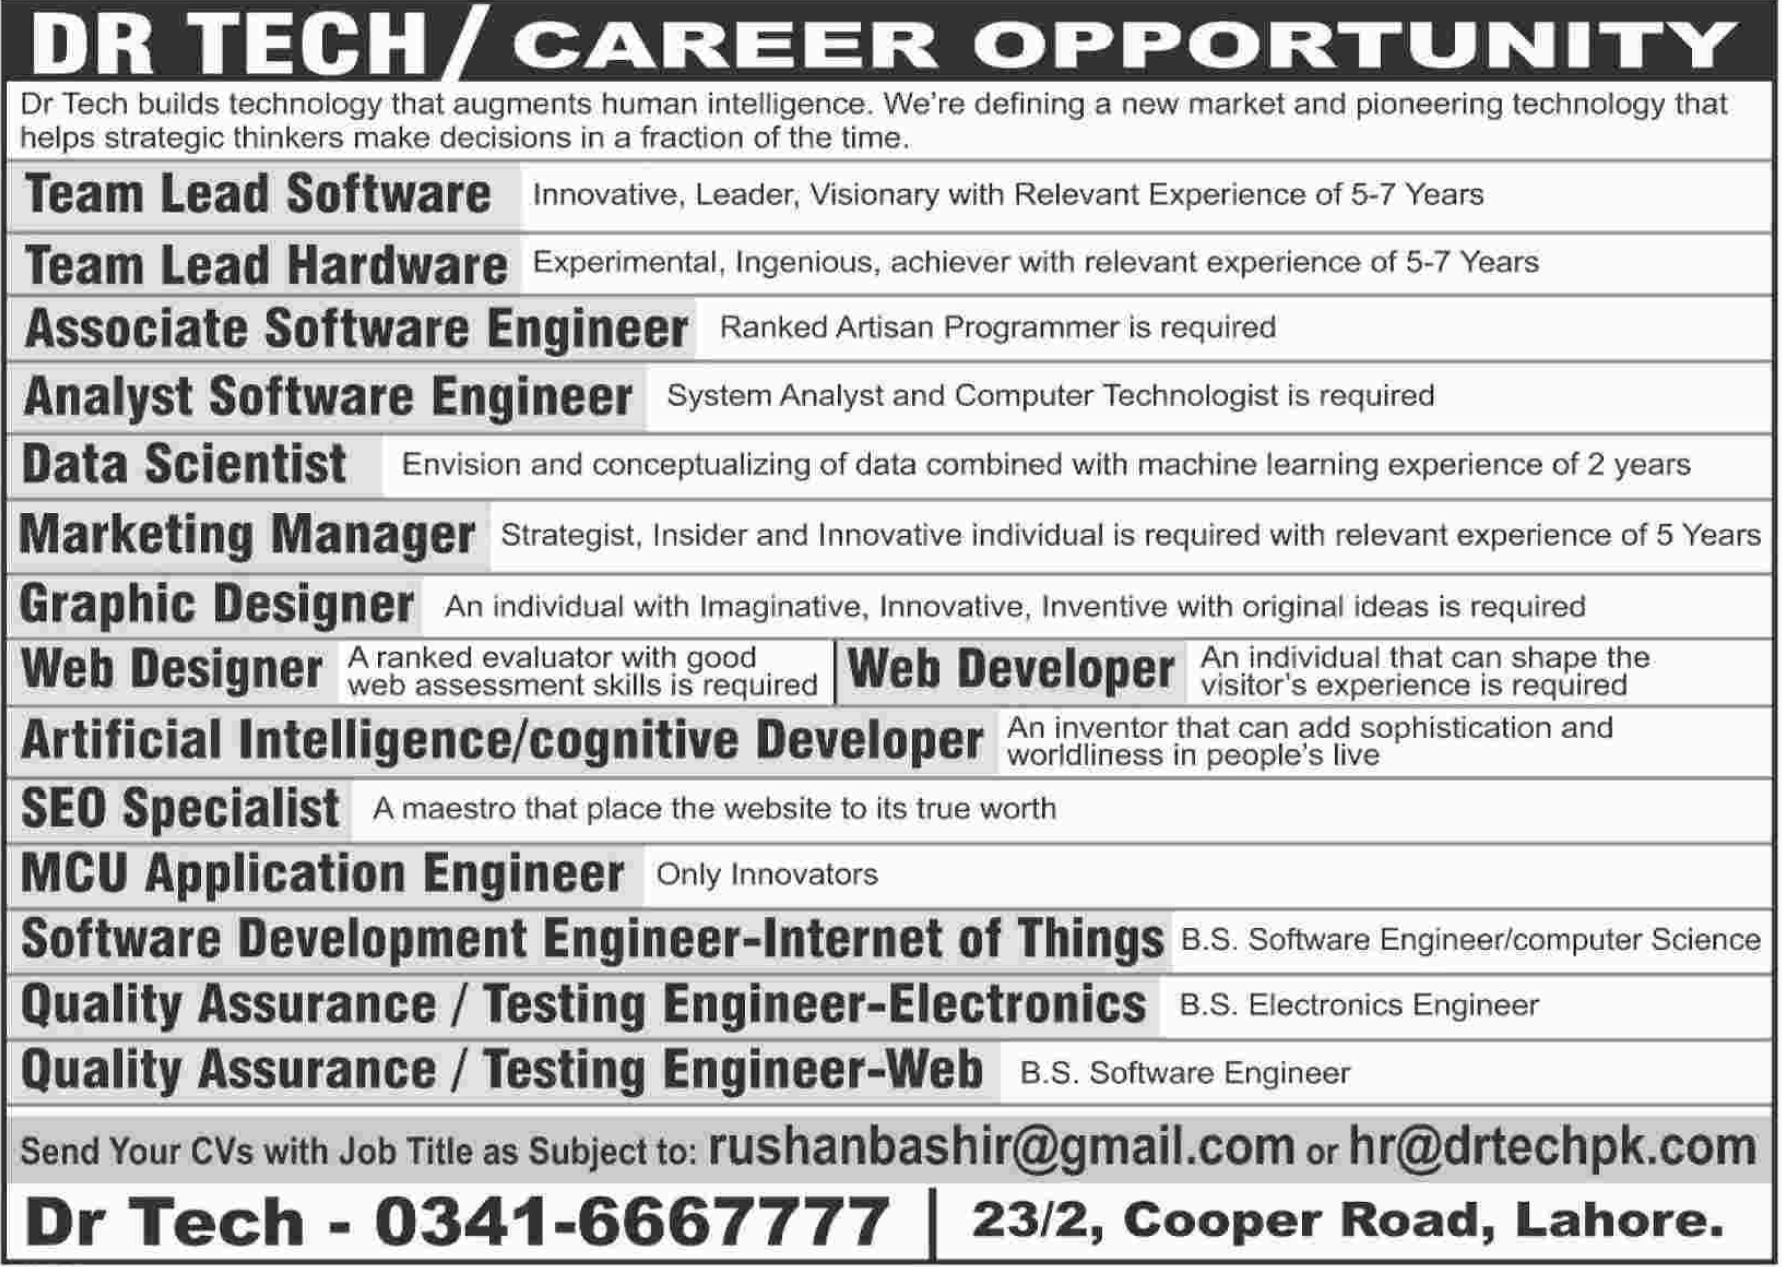 Software Engineer & Web Designer Jobs 2018 in Dr. Tech 2018 Jobs ...